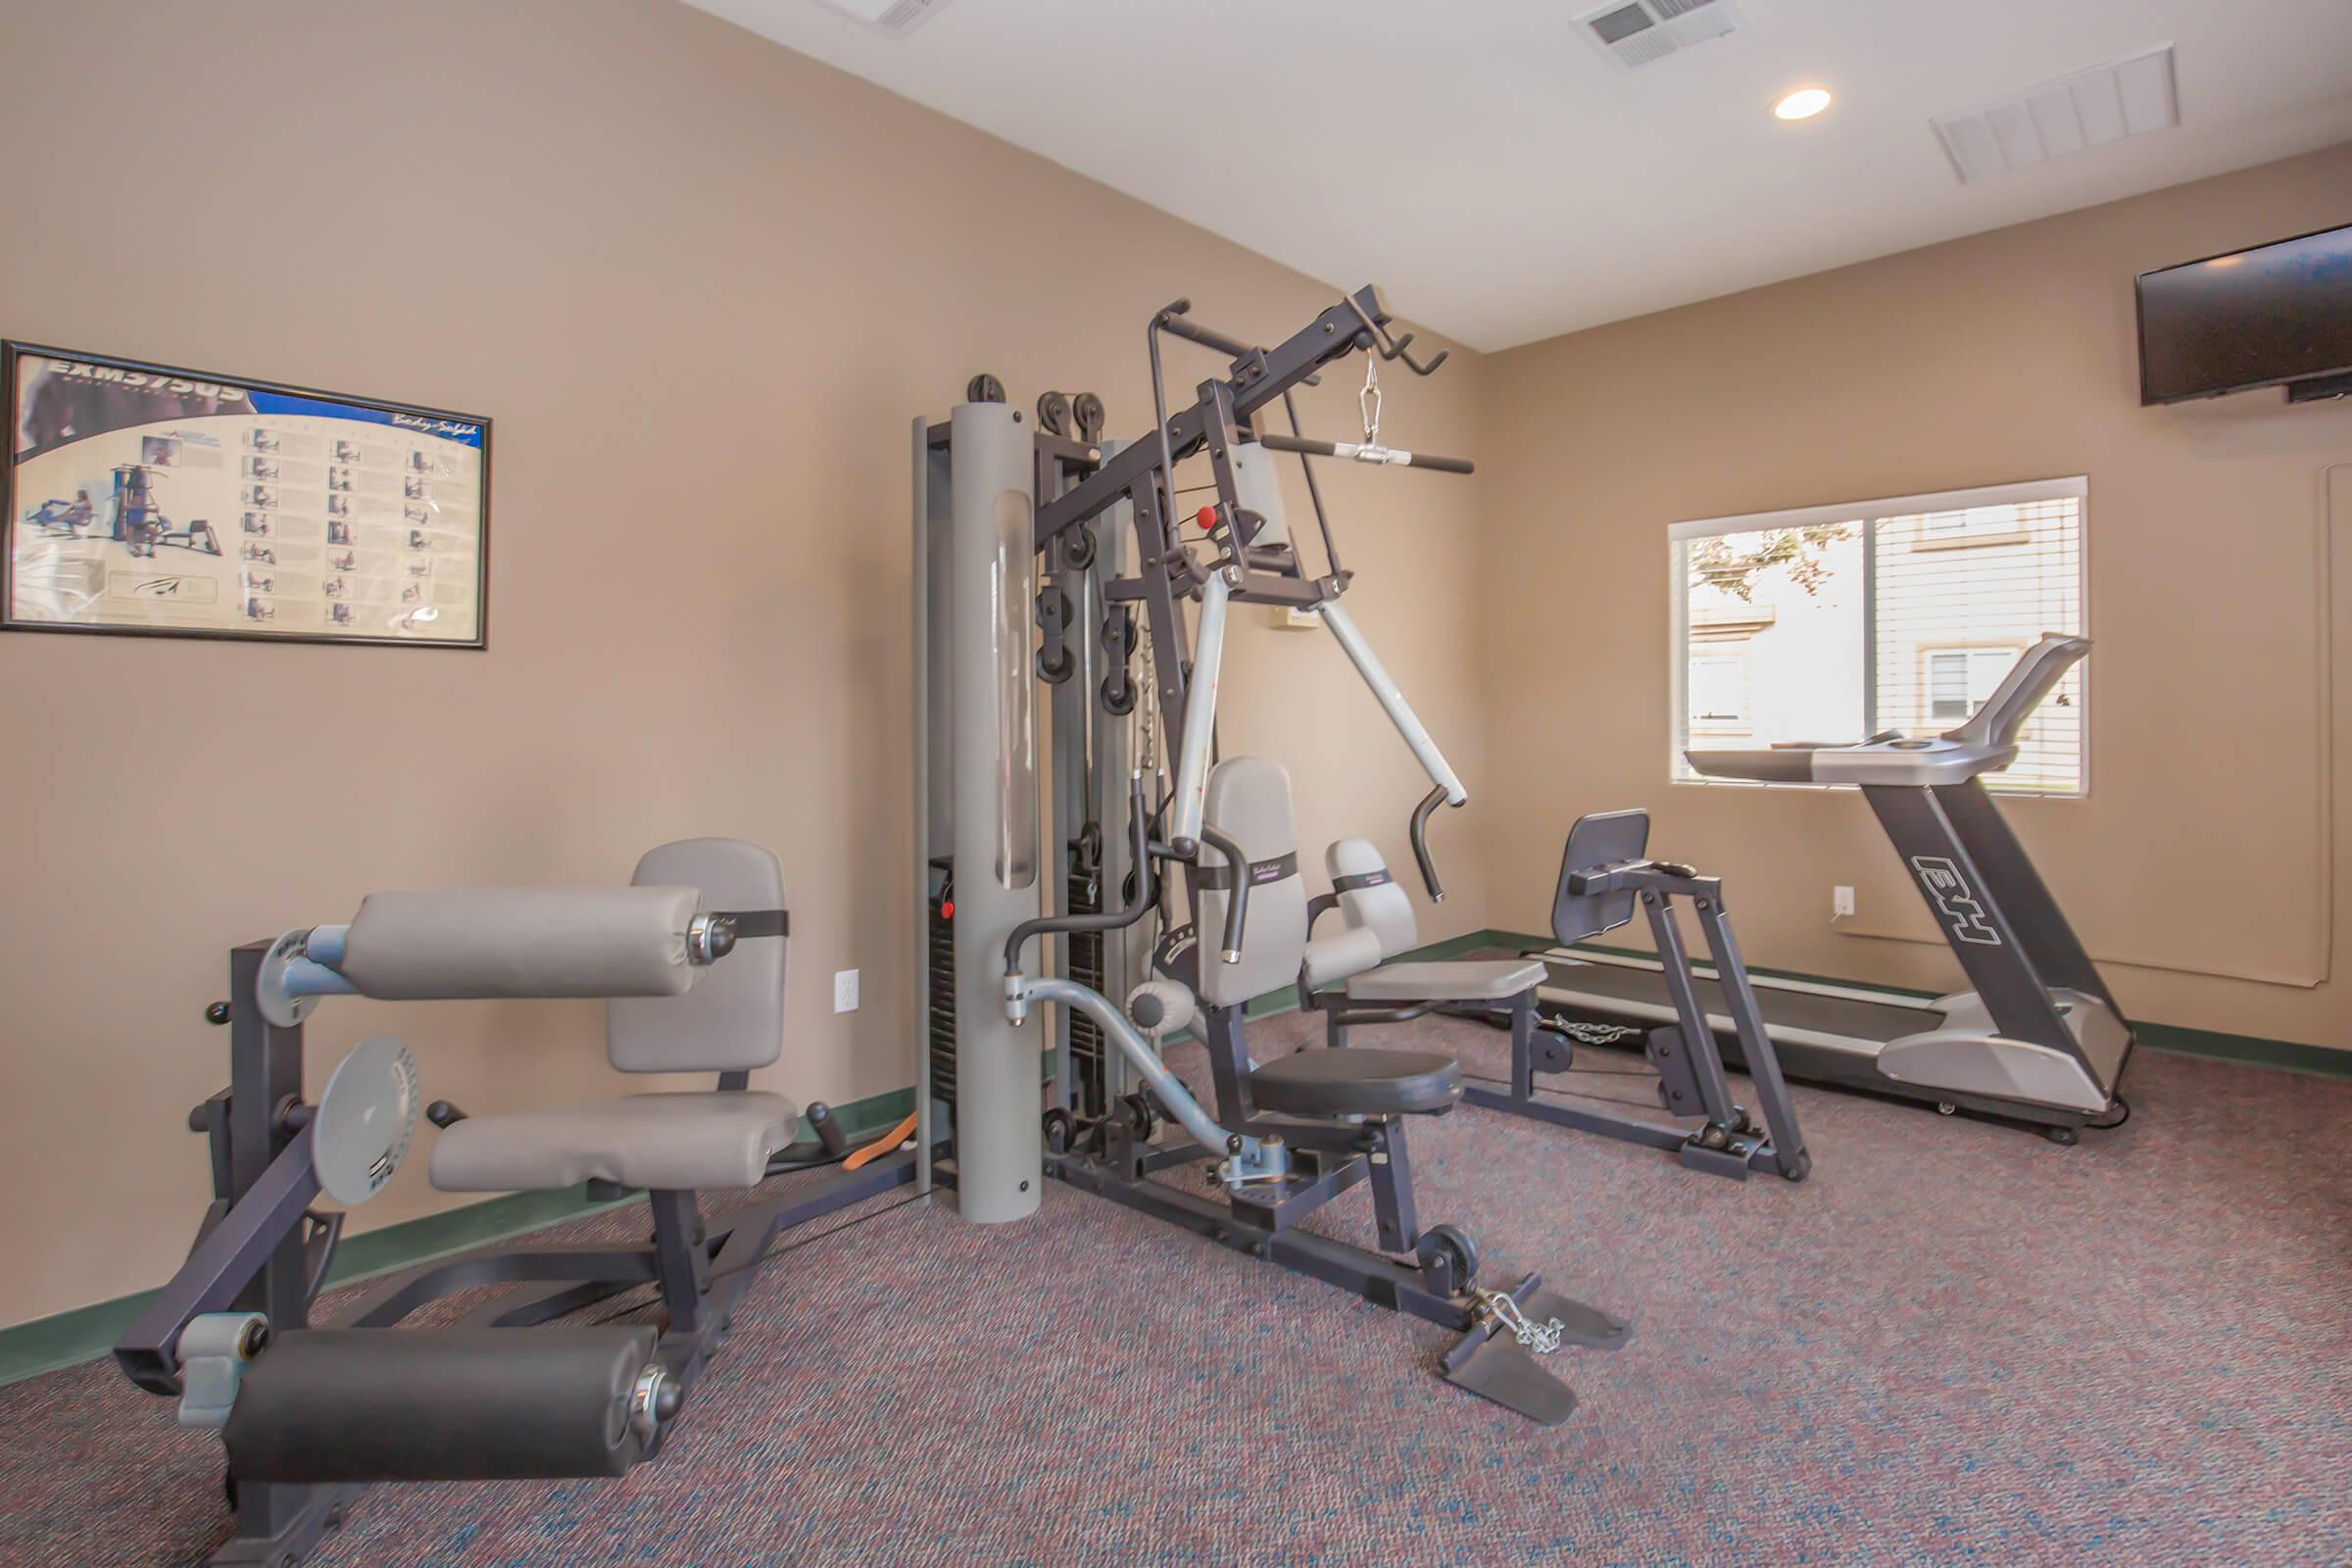 Work-out equipment in the community gym